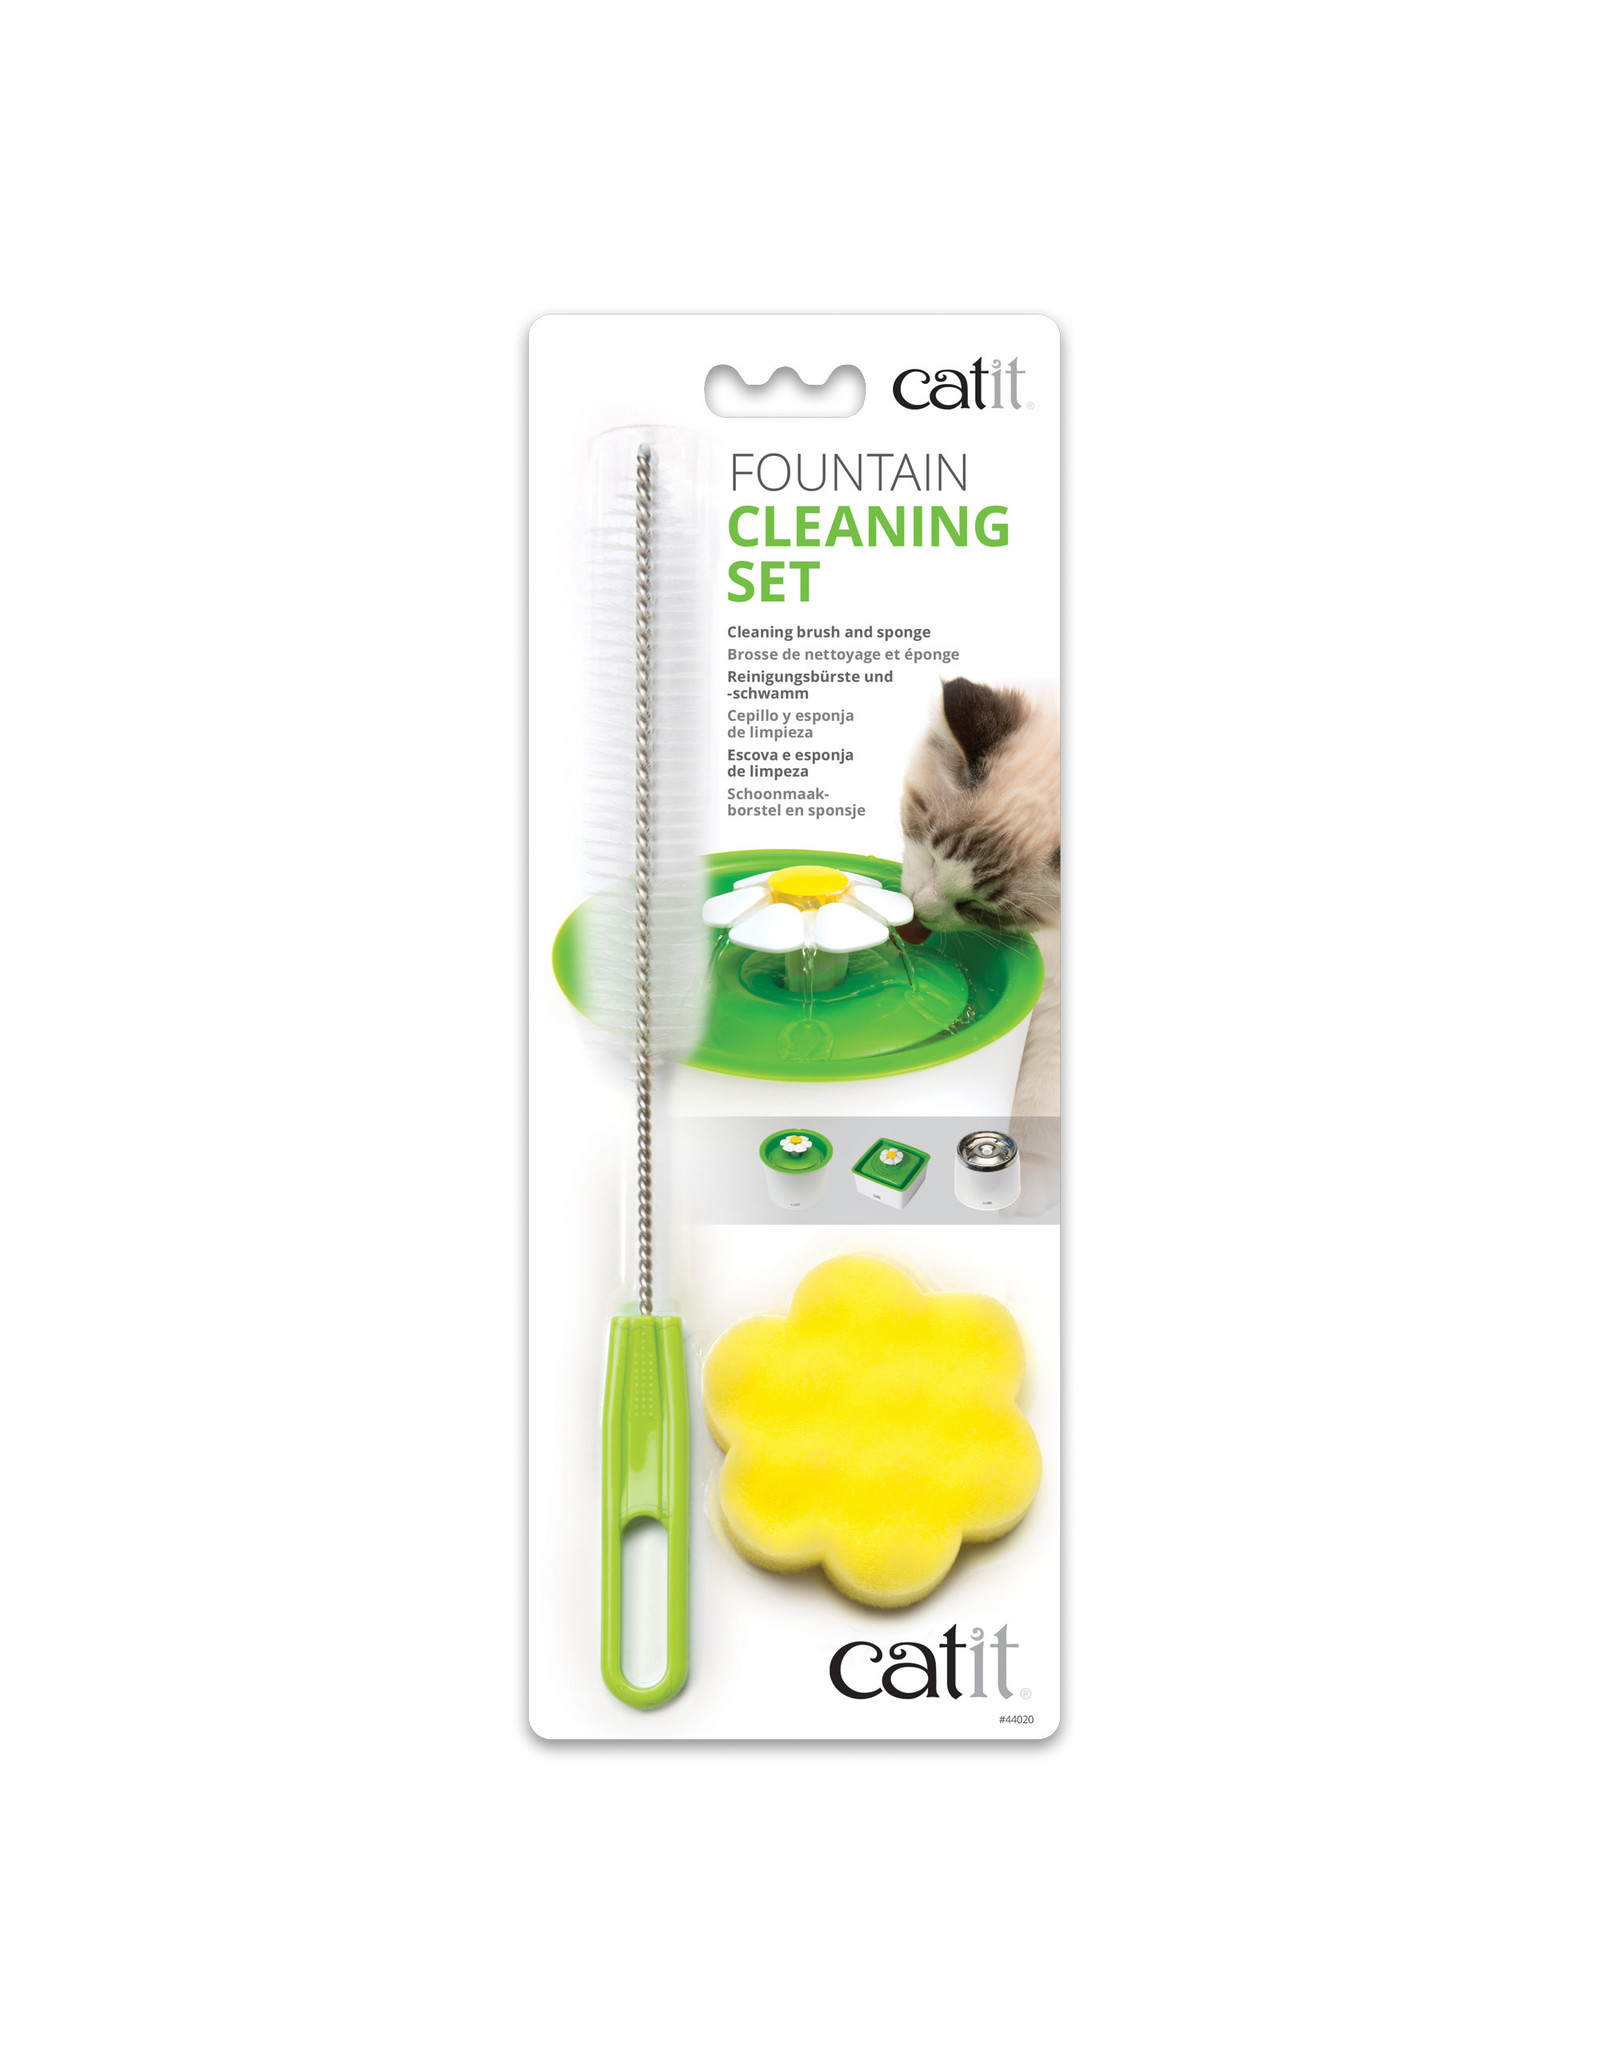 CT - Catit 2.0 Catit Fountain Cleaning Set